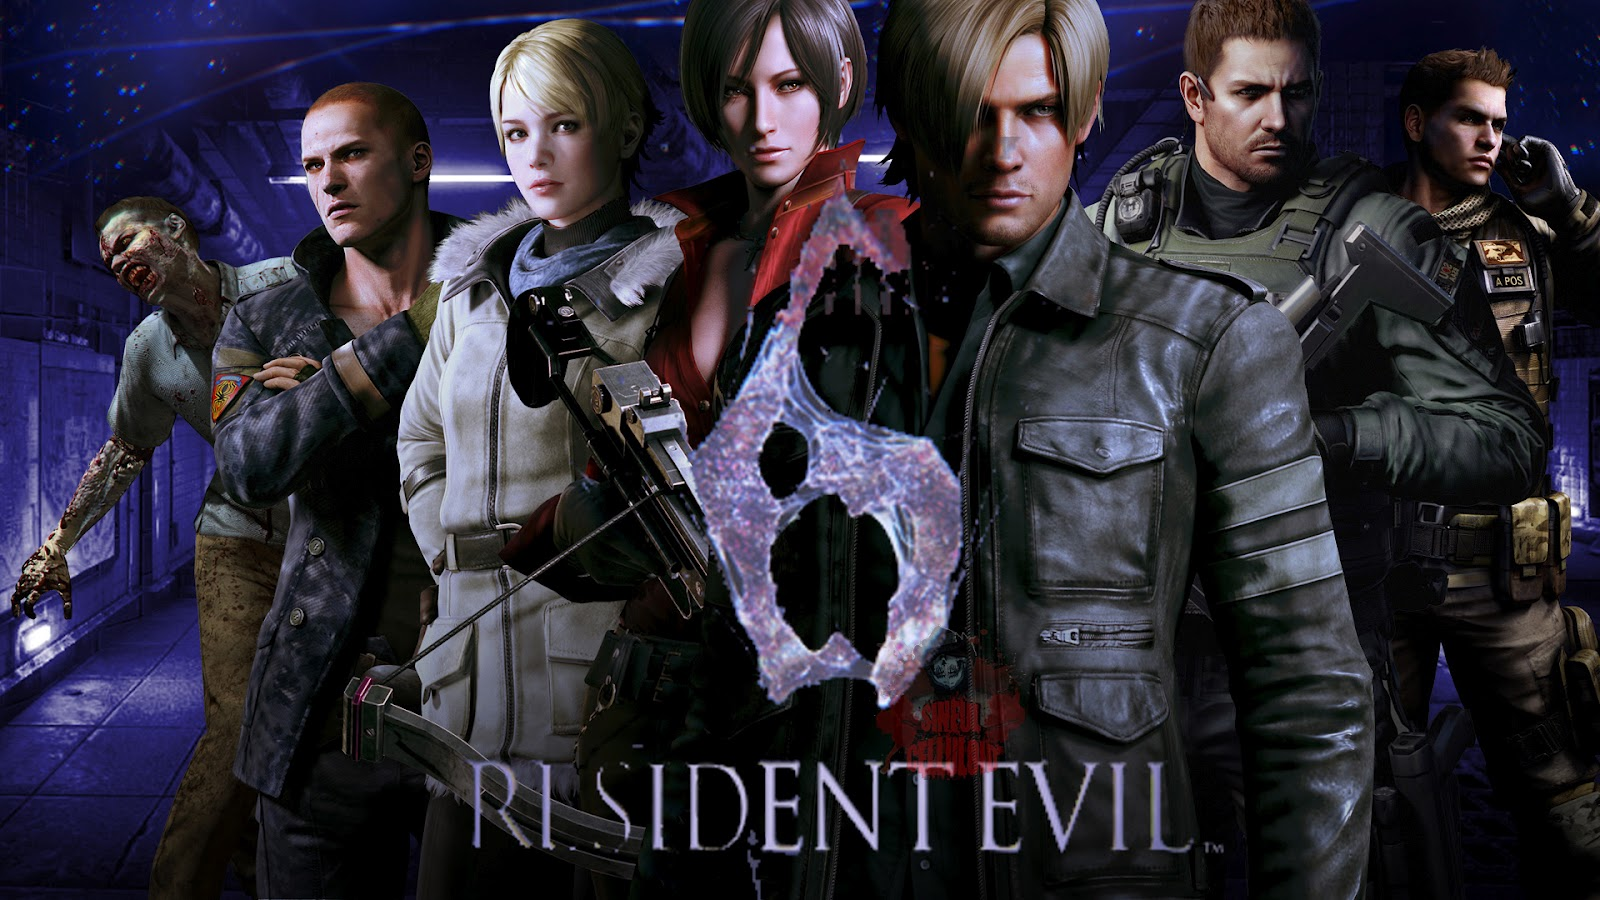 Resident Evil 6 Free Download Overview